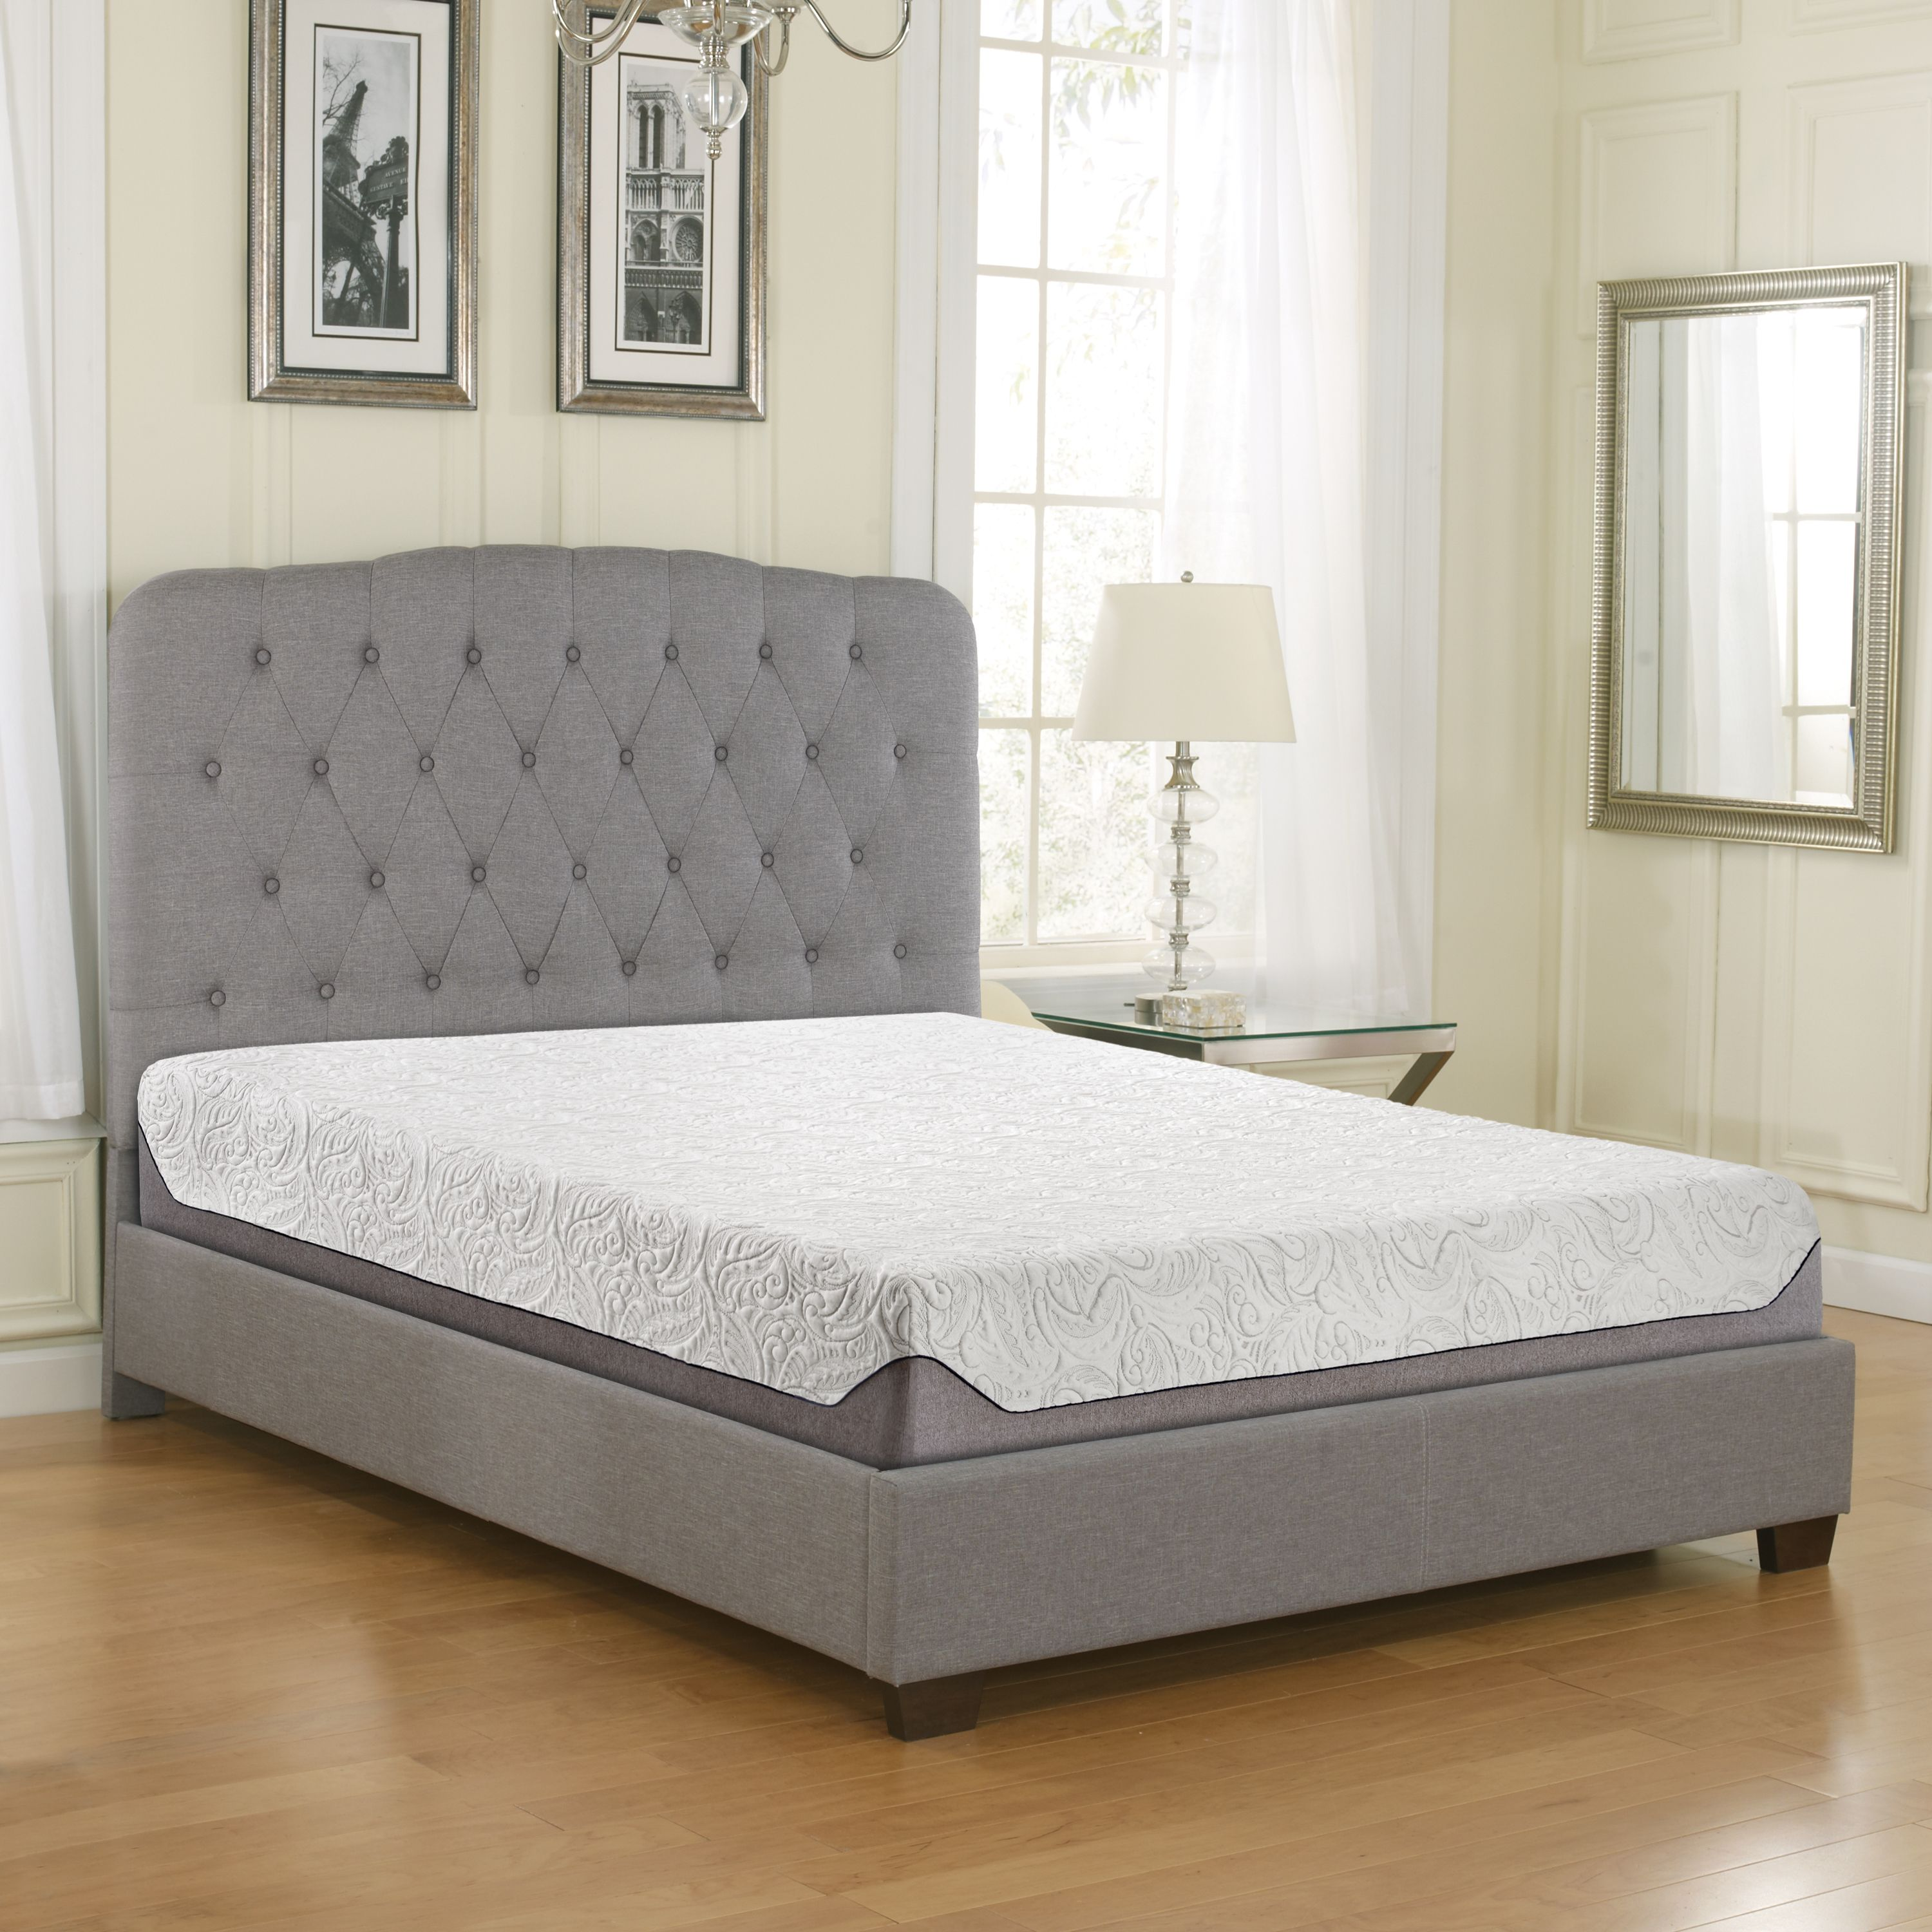 "Contura 8"" AirFlow Gel Memory Foam Mattress, Multiple Sizes"